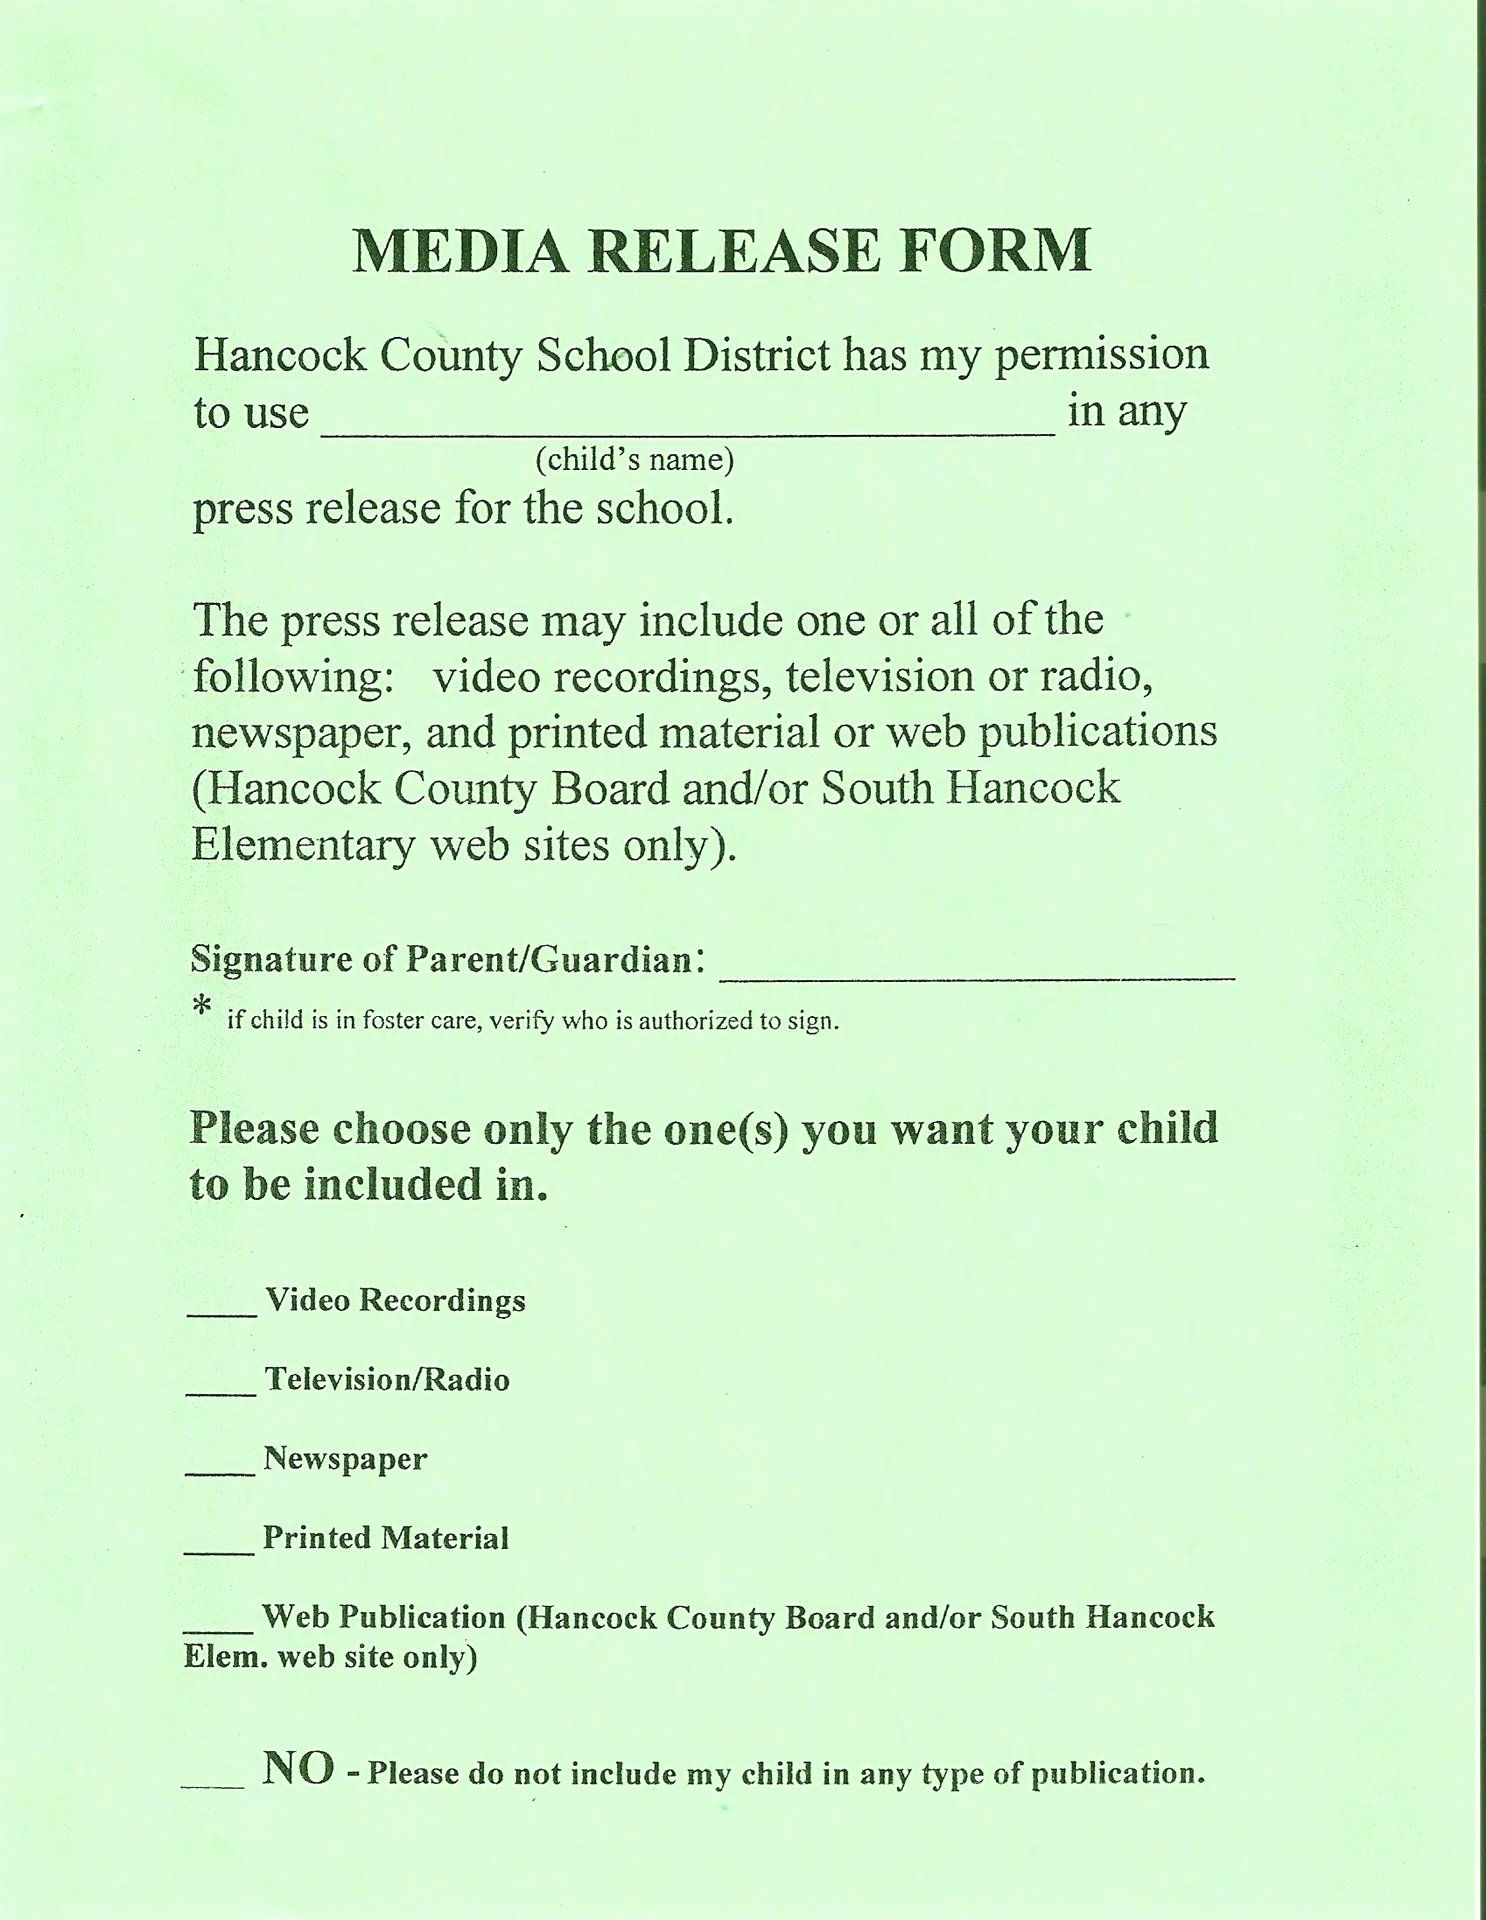 school media release form lovely hancock county schools in resume summary for student examples infographic template word free download civil engineer experience